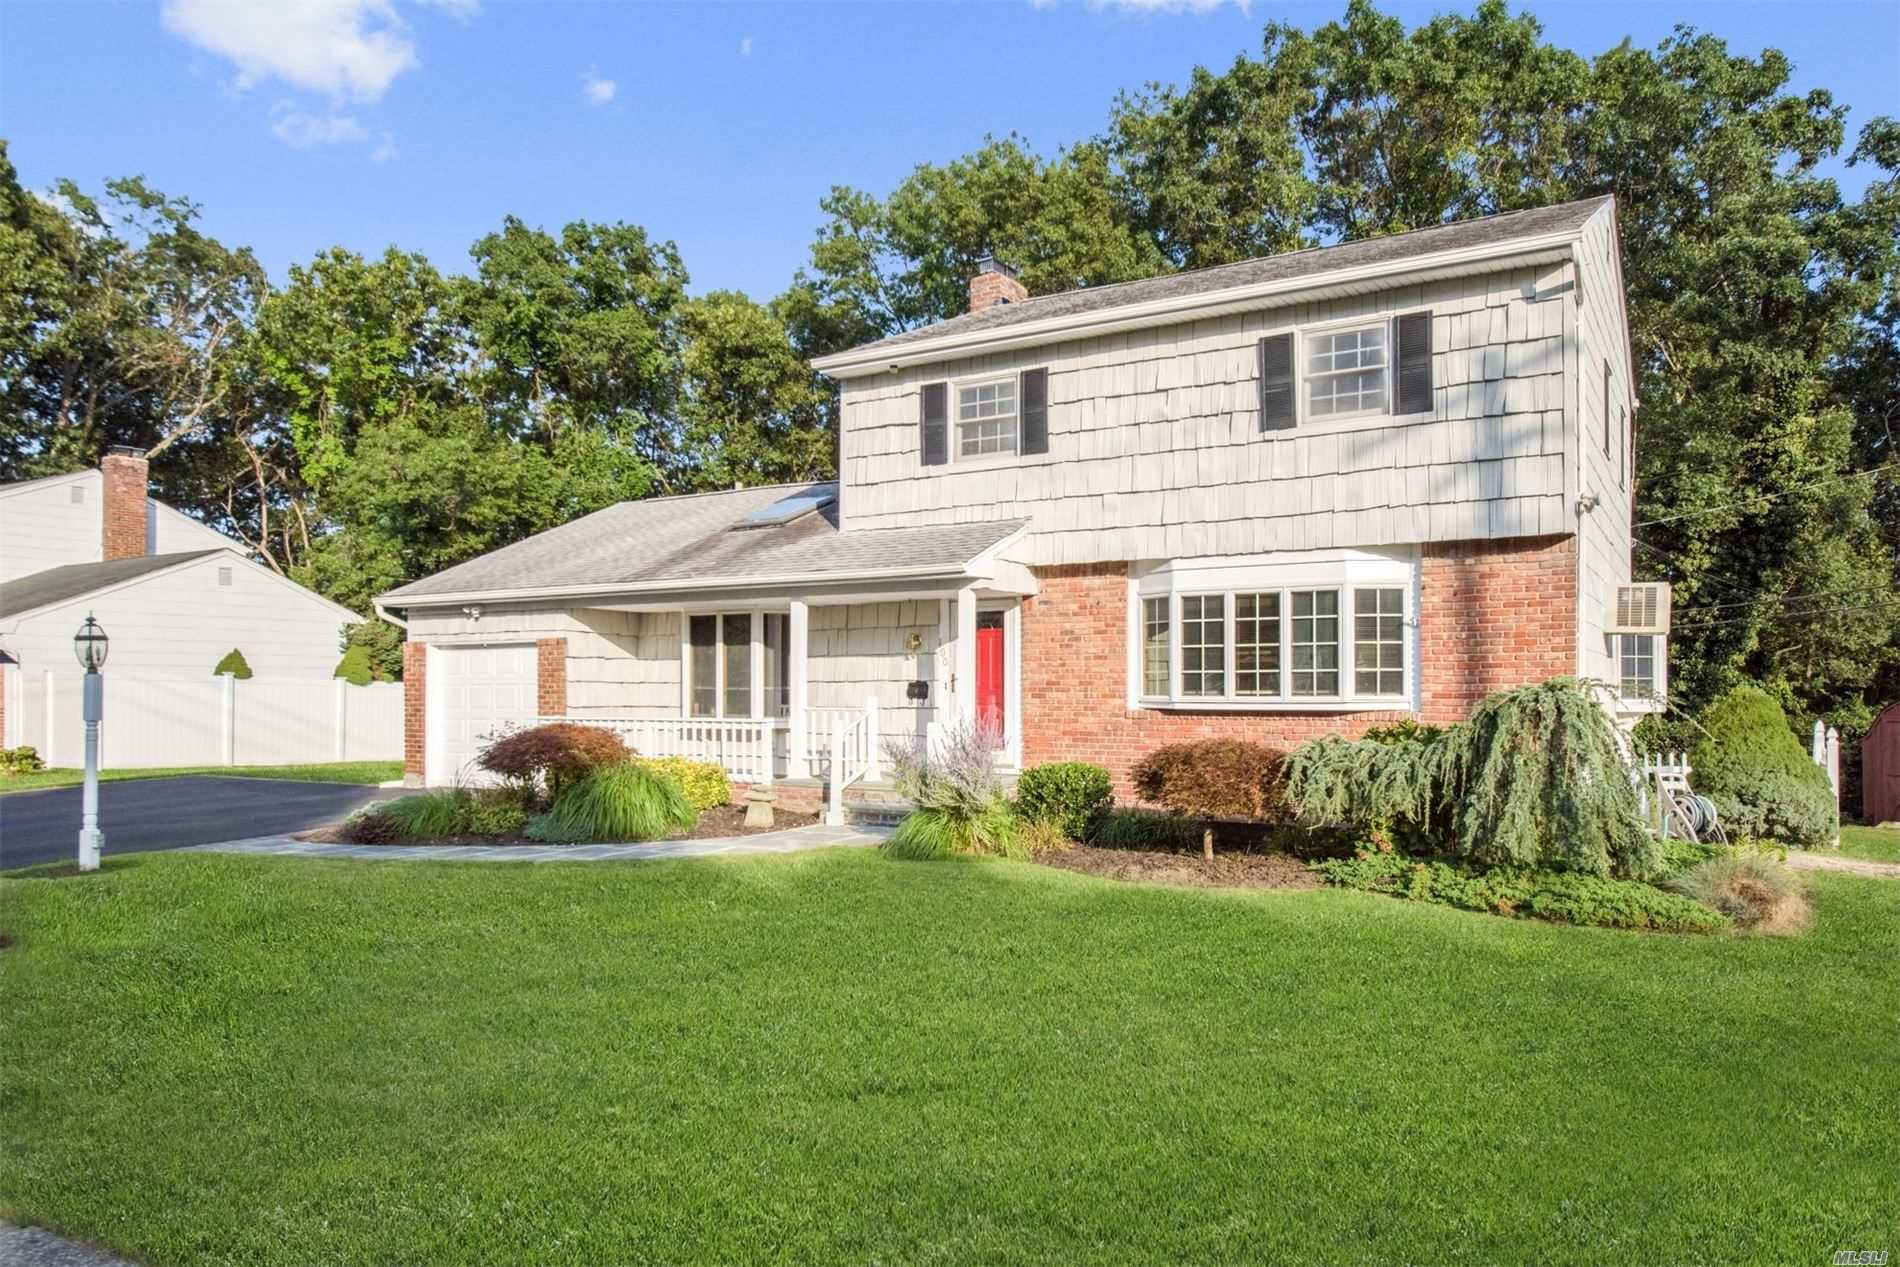 100 Gerald Ln - Old Bethpage, New York